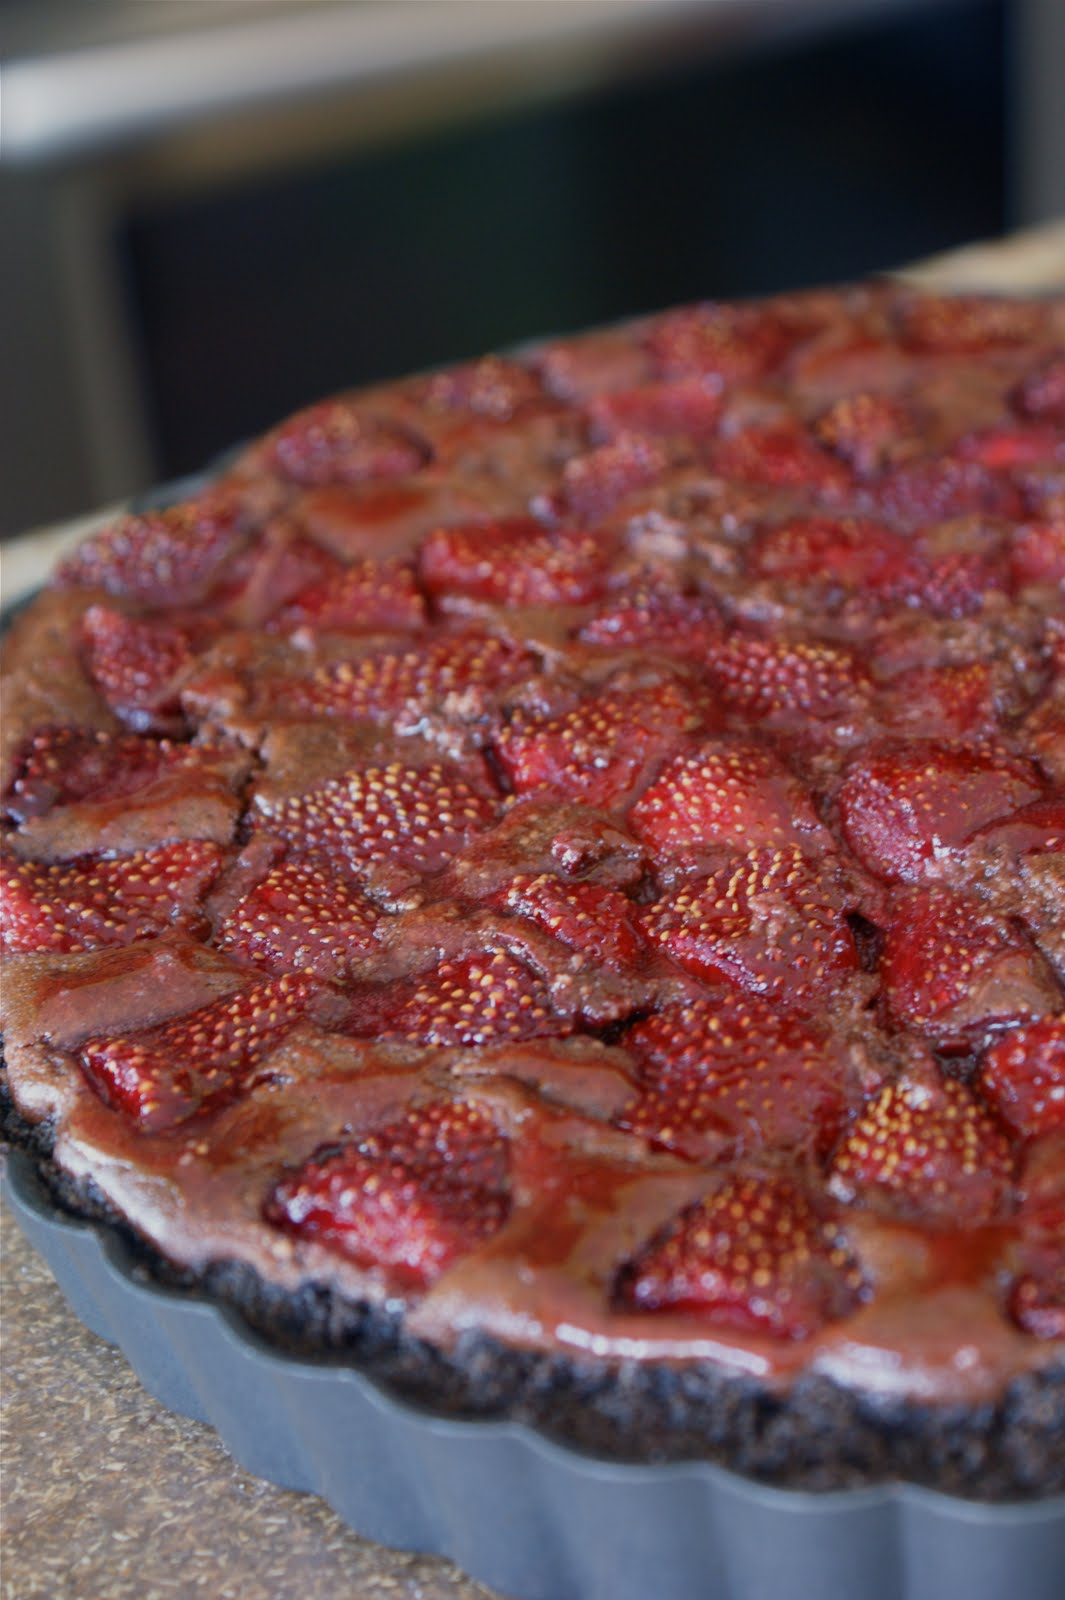 Bananas For Bourbon: Chocolate Strawberry Ricotta Tart